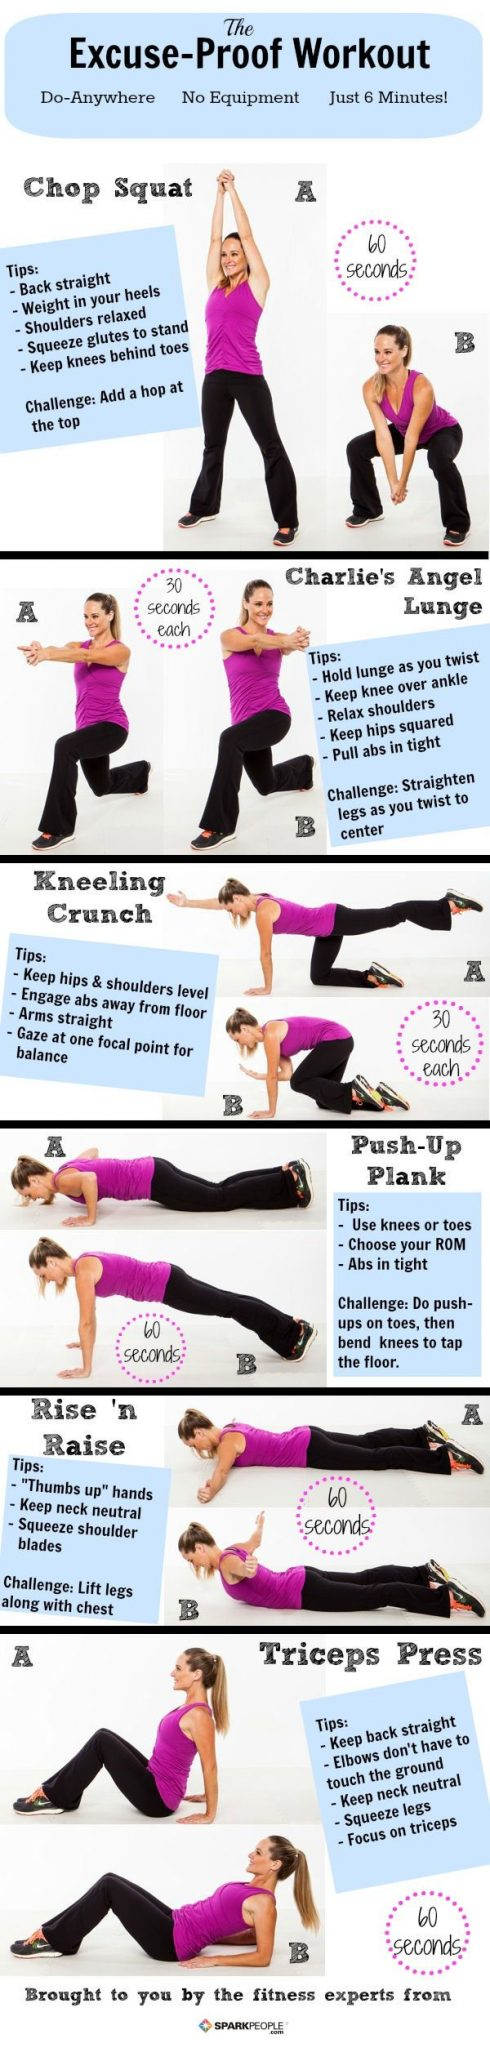 6 Minute Exercise Without Equipment